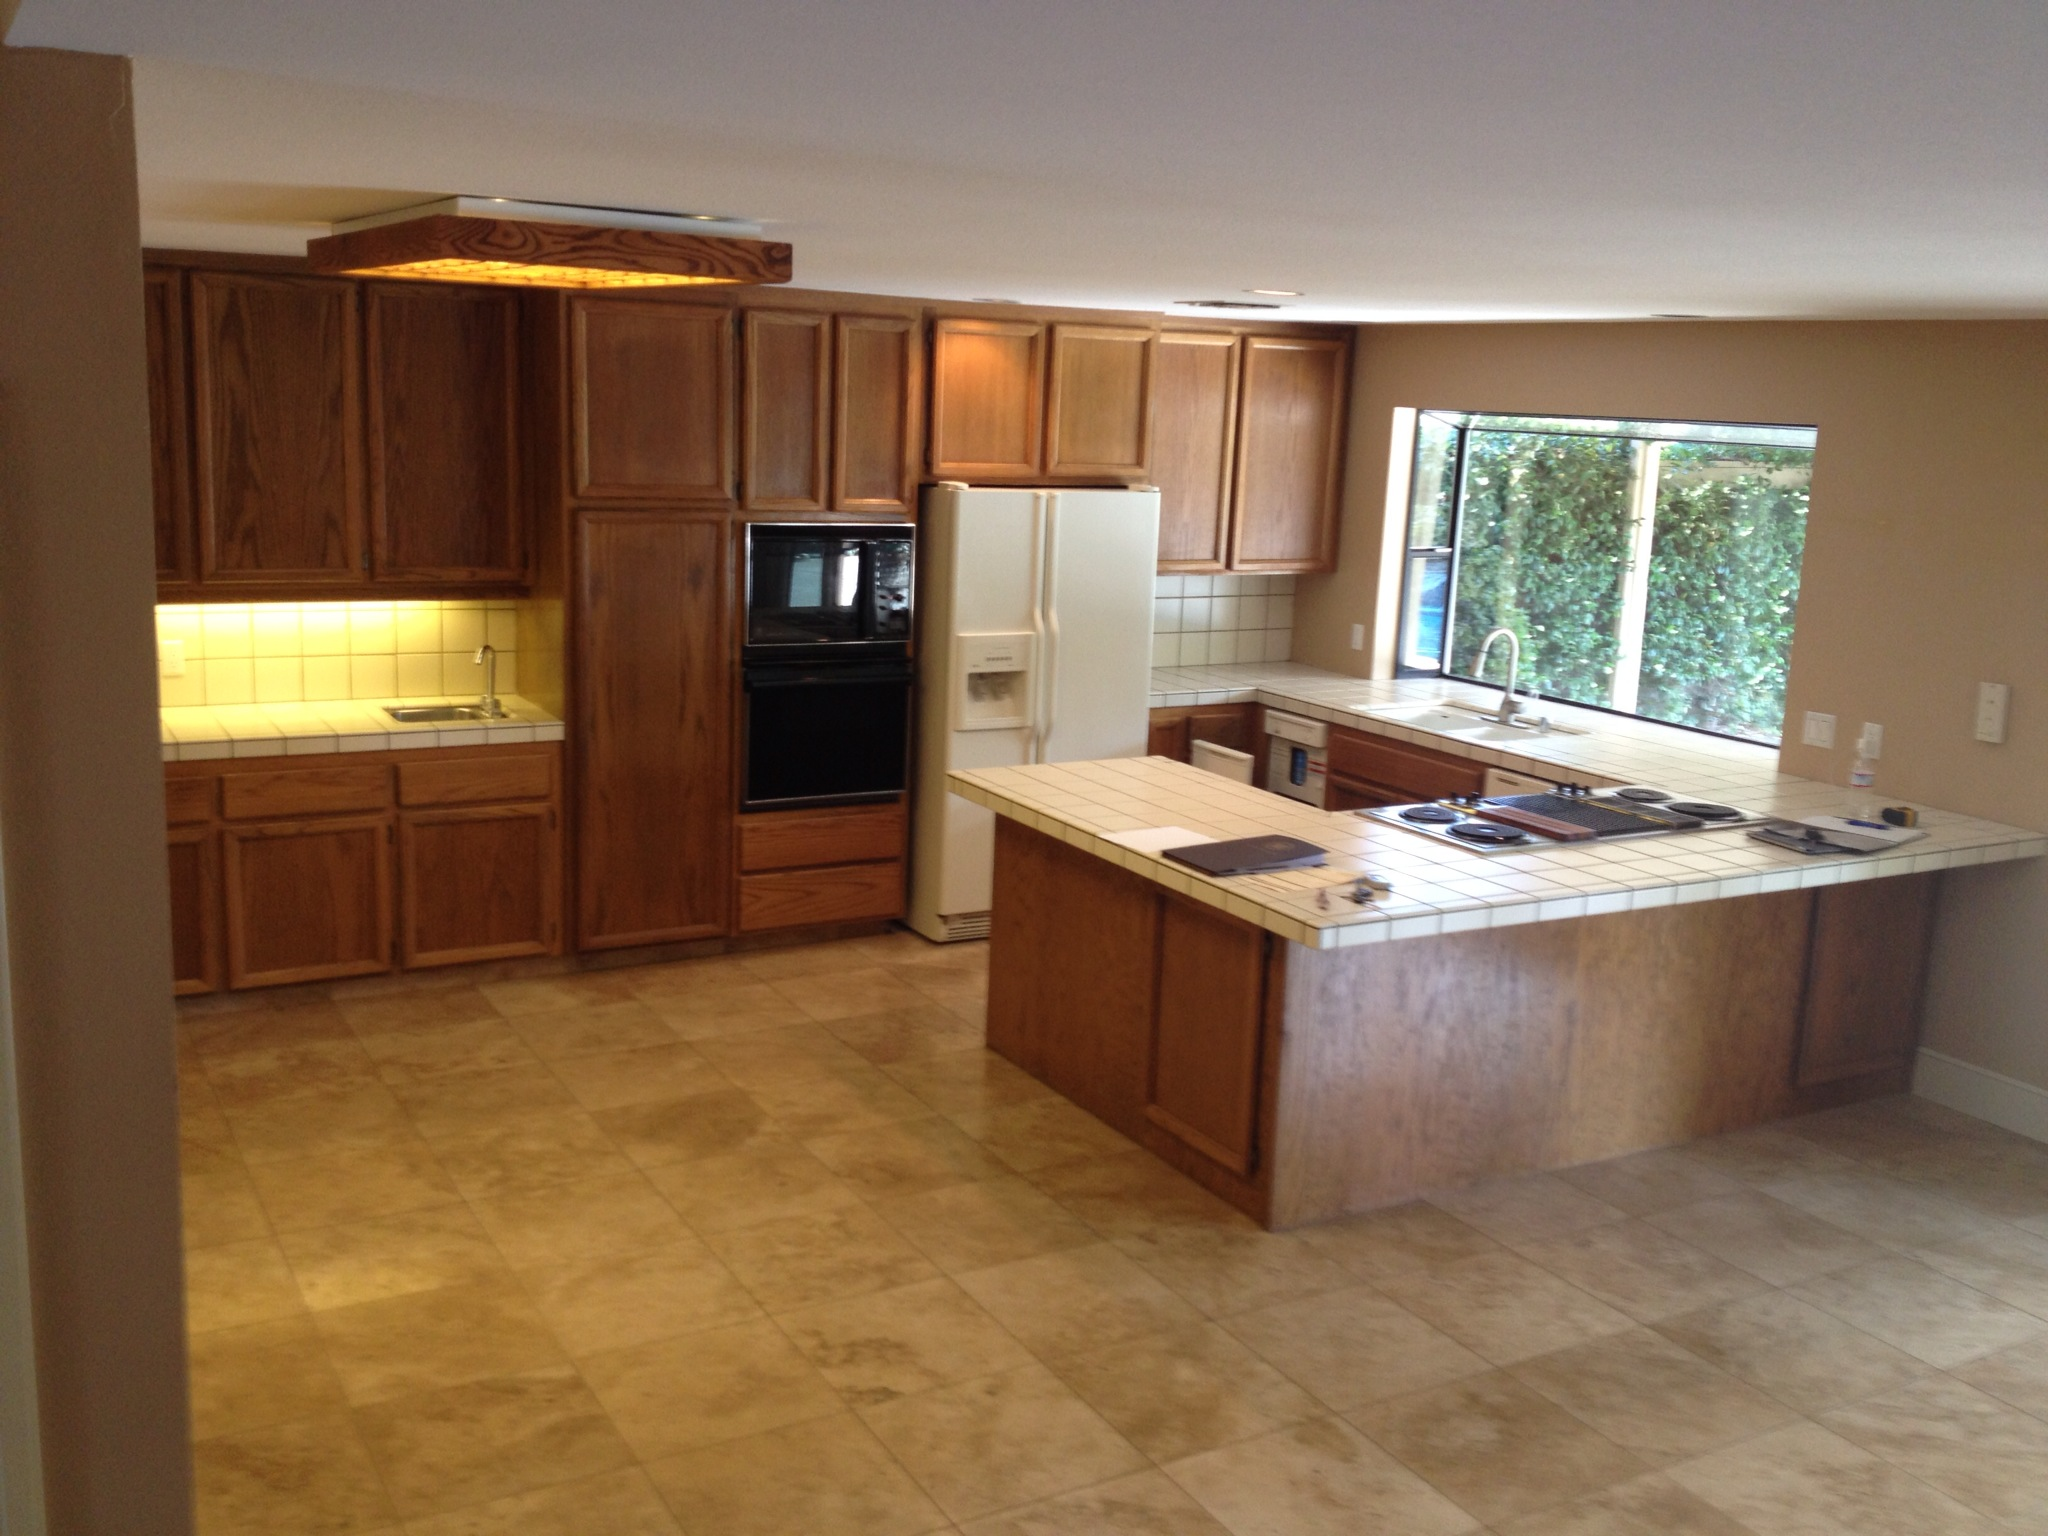 This photoshows cabinets, appliances and tile countertops that were nearly 30 years old. The layout made it difficult for more than one person to be in the kitchen or use more than one appliance at a time.